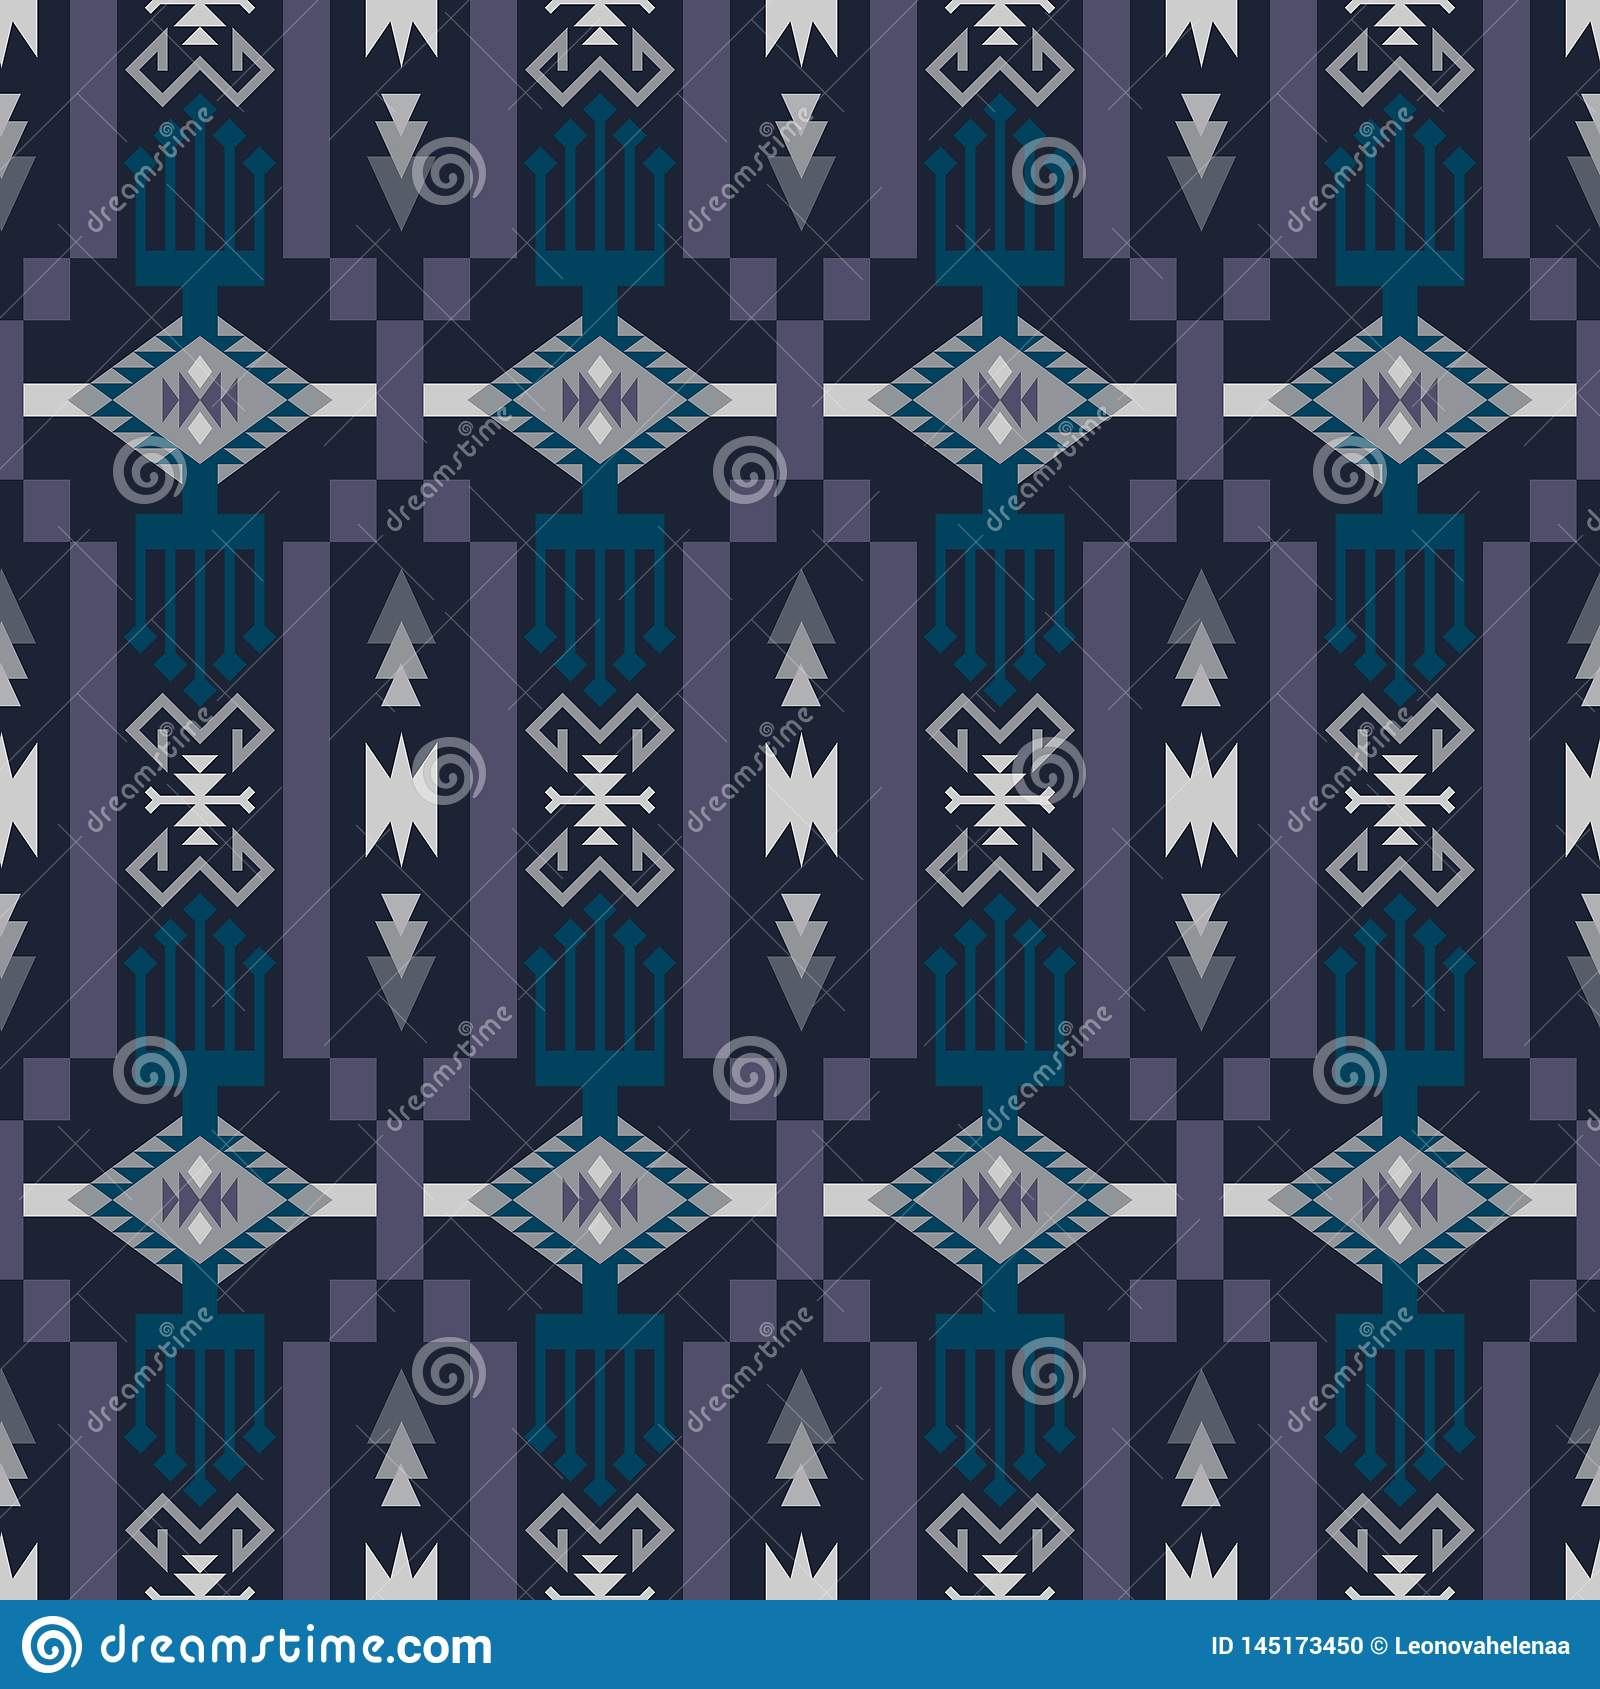 image about Native American Designs Printable referred to as Indigenous Southwest American, Indian, Aztec, Navajo Seamless